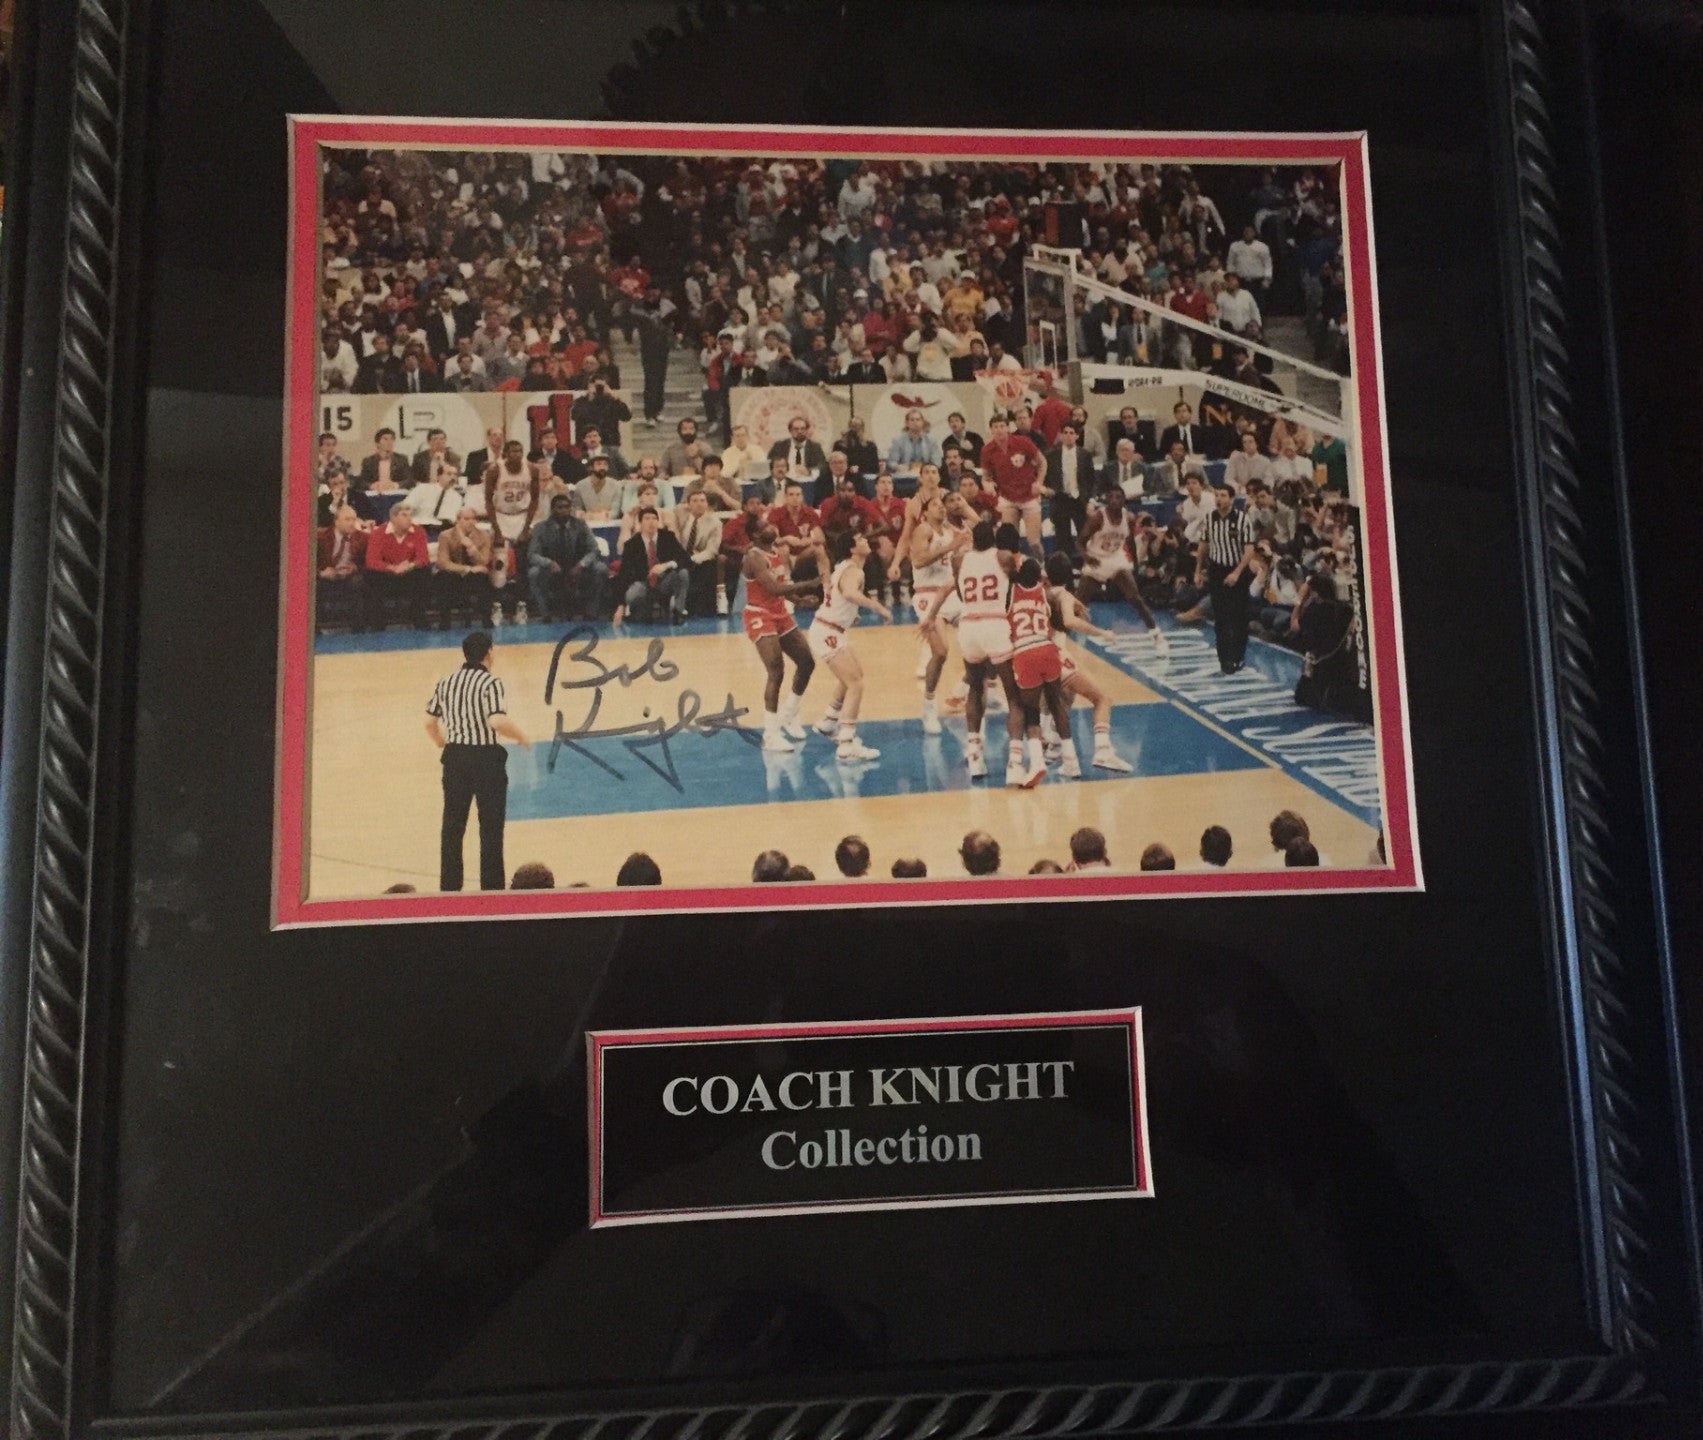 Keith Smart 1987 NCAA Championship Game Winning Shot Photo, Bob Knight Autograph - Vintage Indy Sports